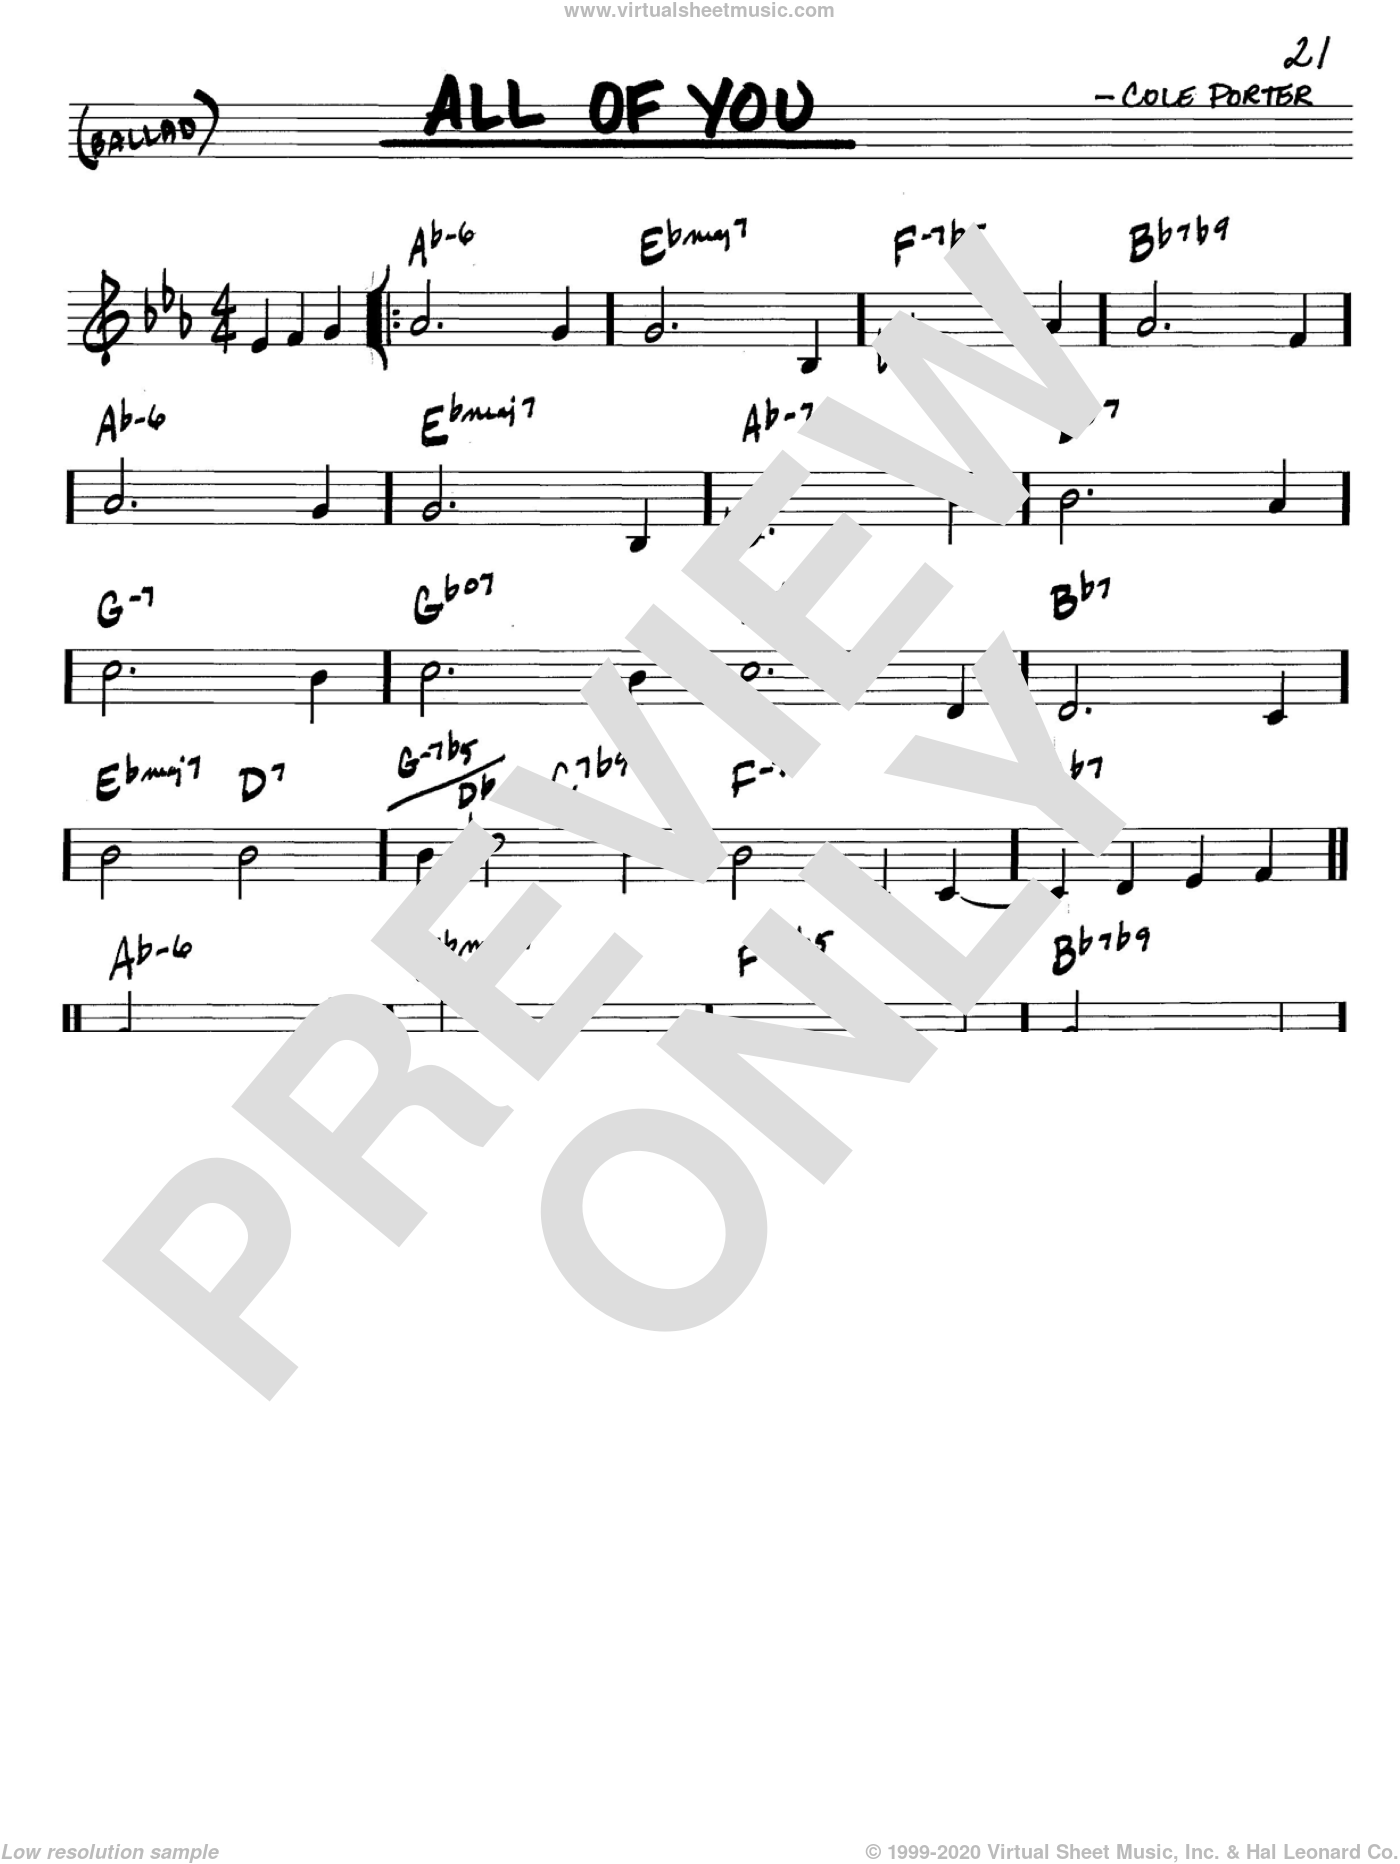 All Of You sheet music for voice and other instruments (C) by Cole Porter